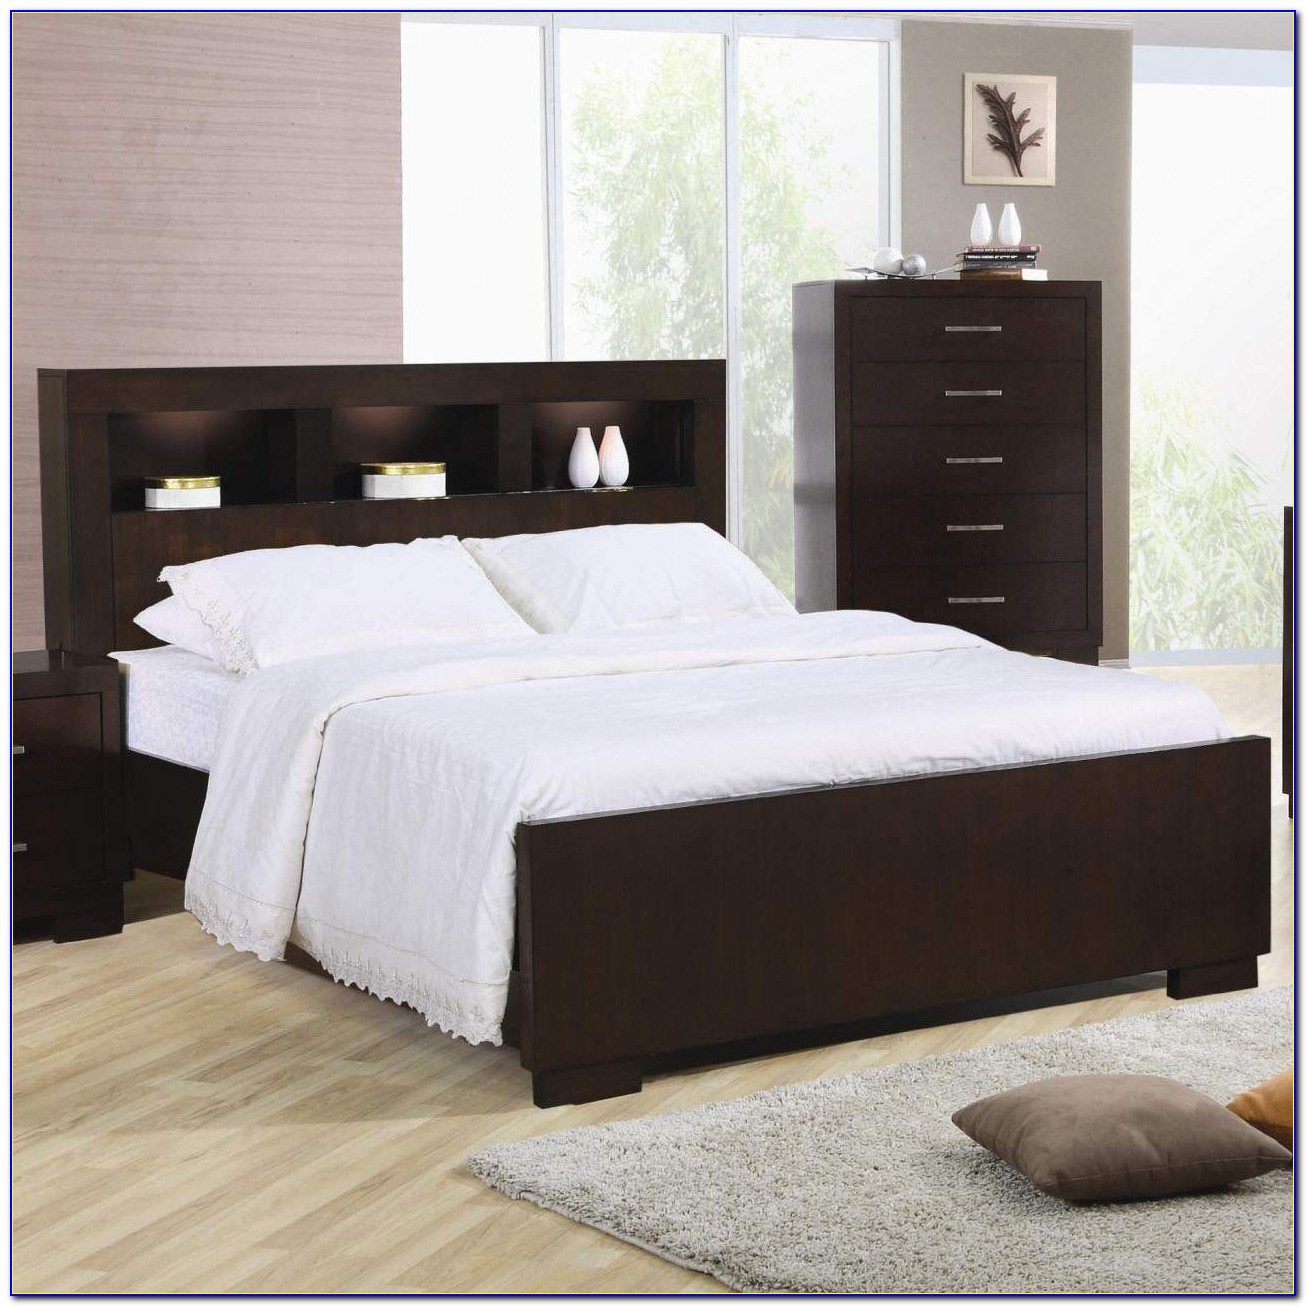 King Size Headboard With Storage